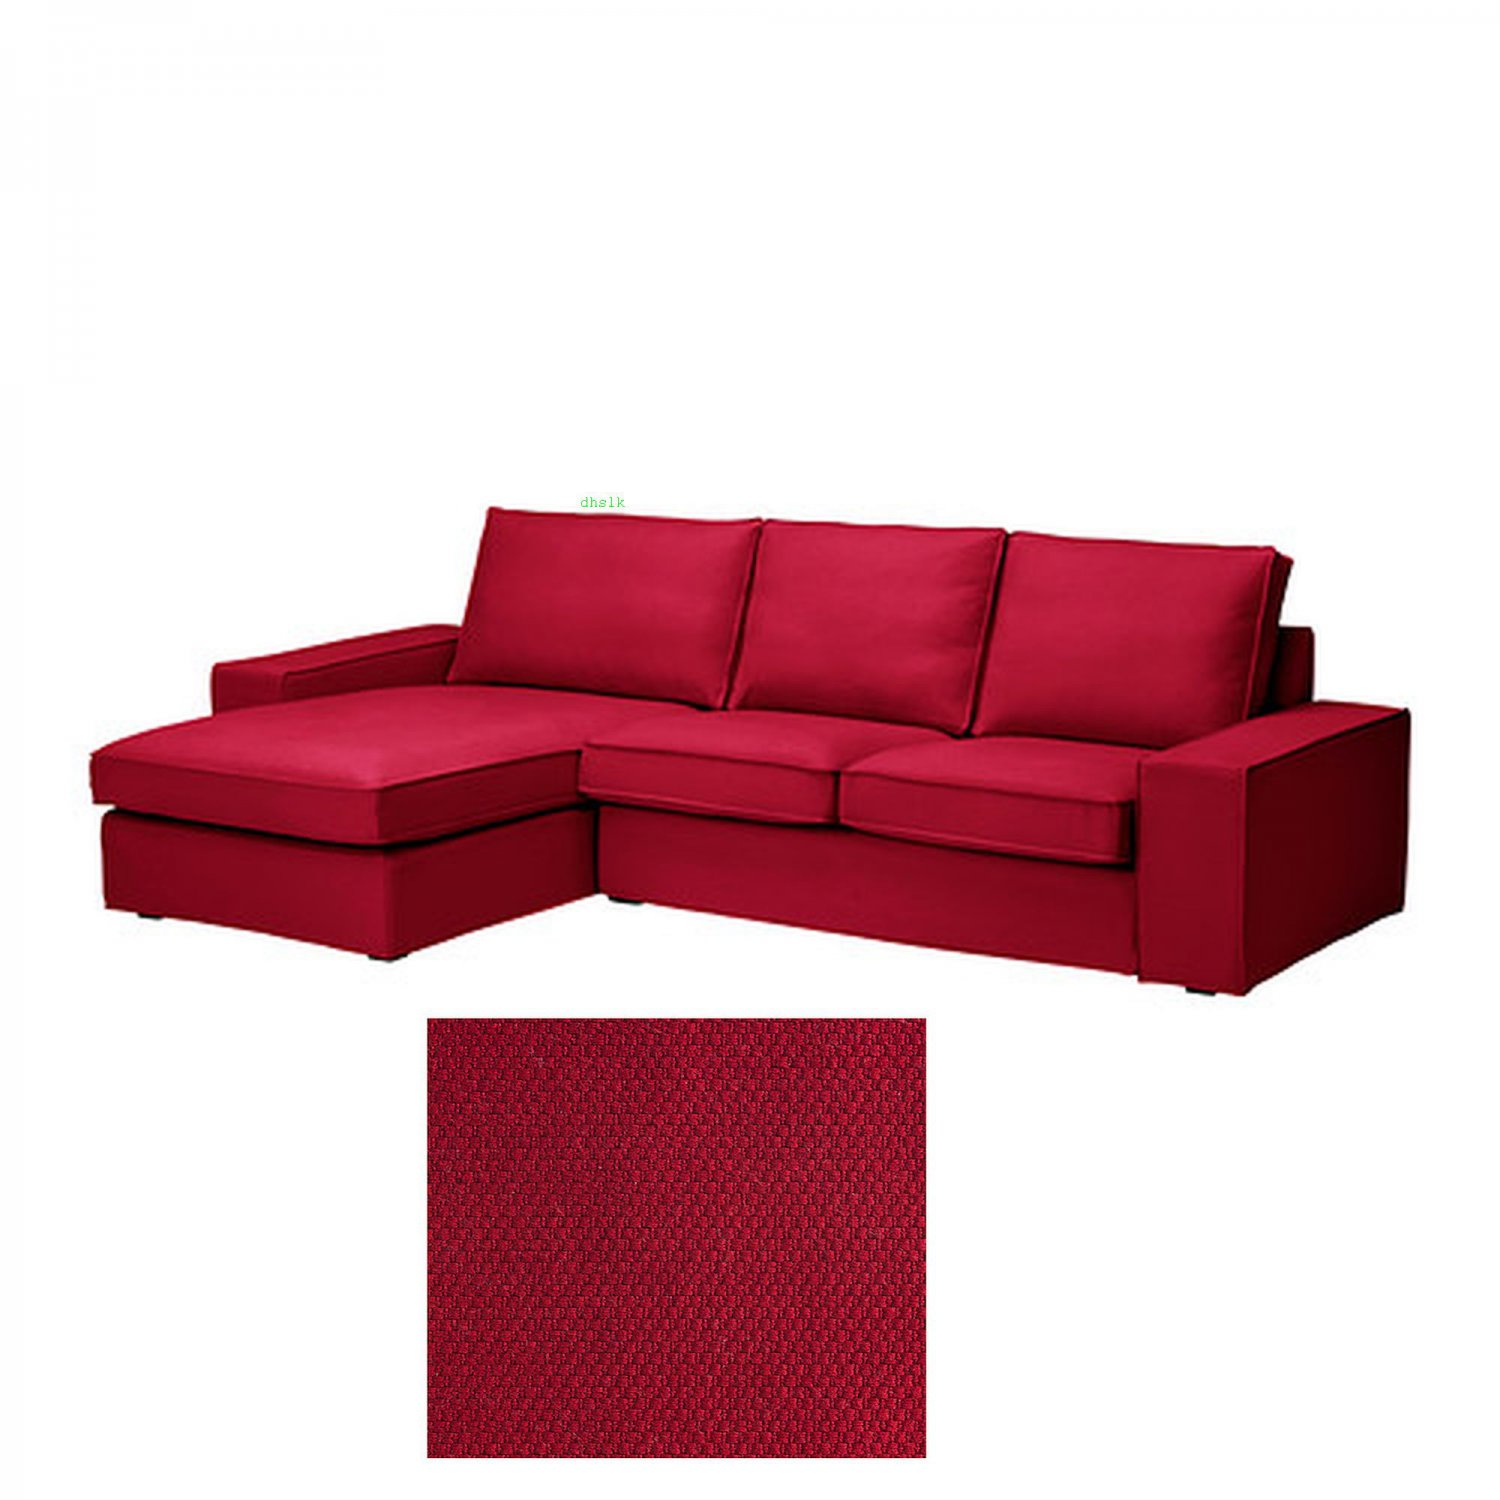 Ikea kivik 2 seat loveseat sofa w chaise lounge slipcover for Chaise couch cover